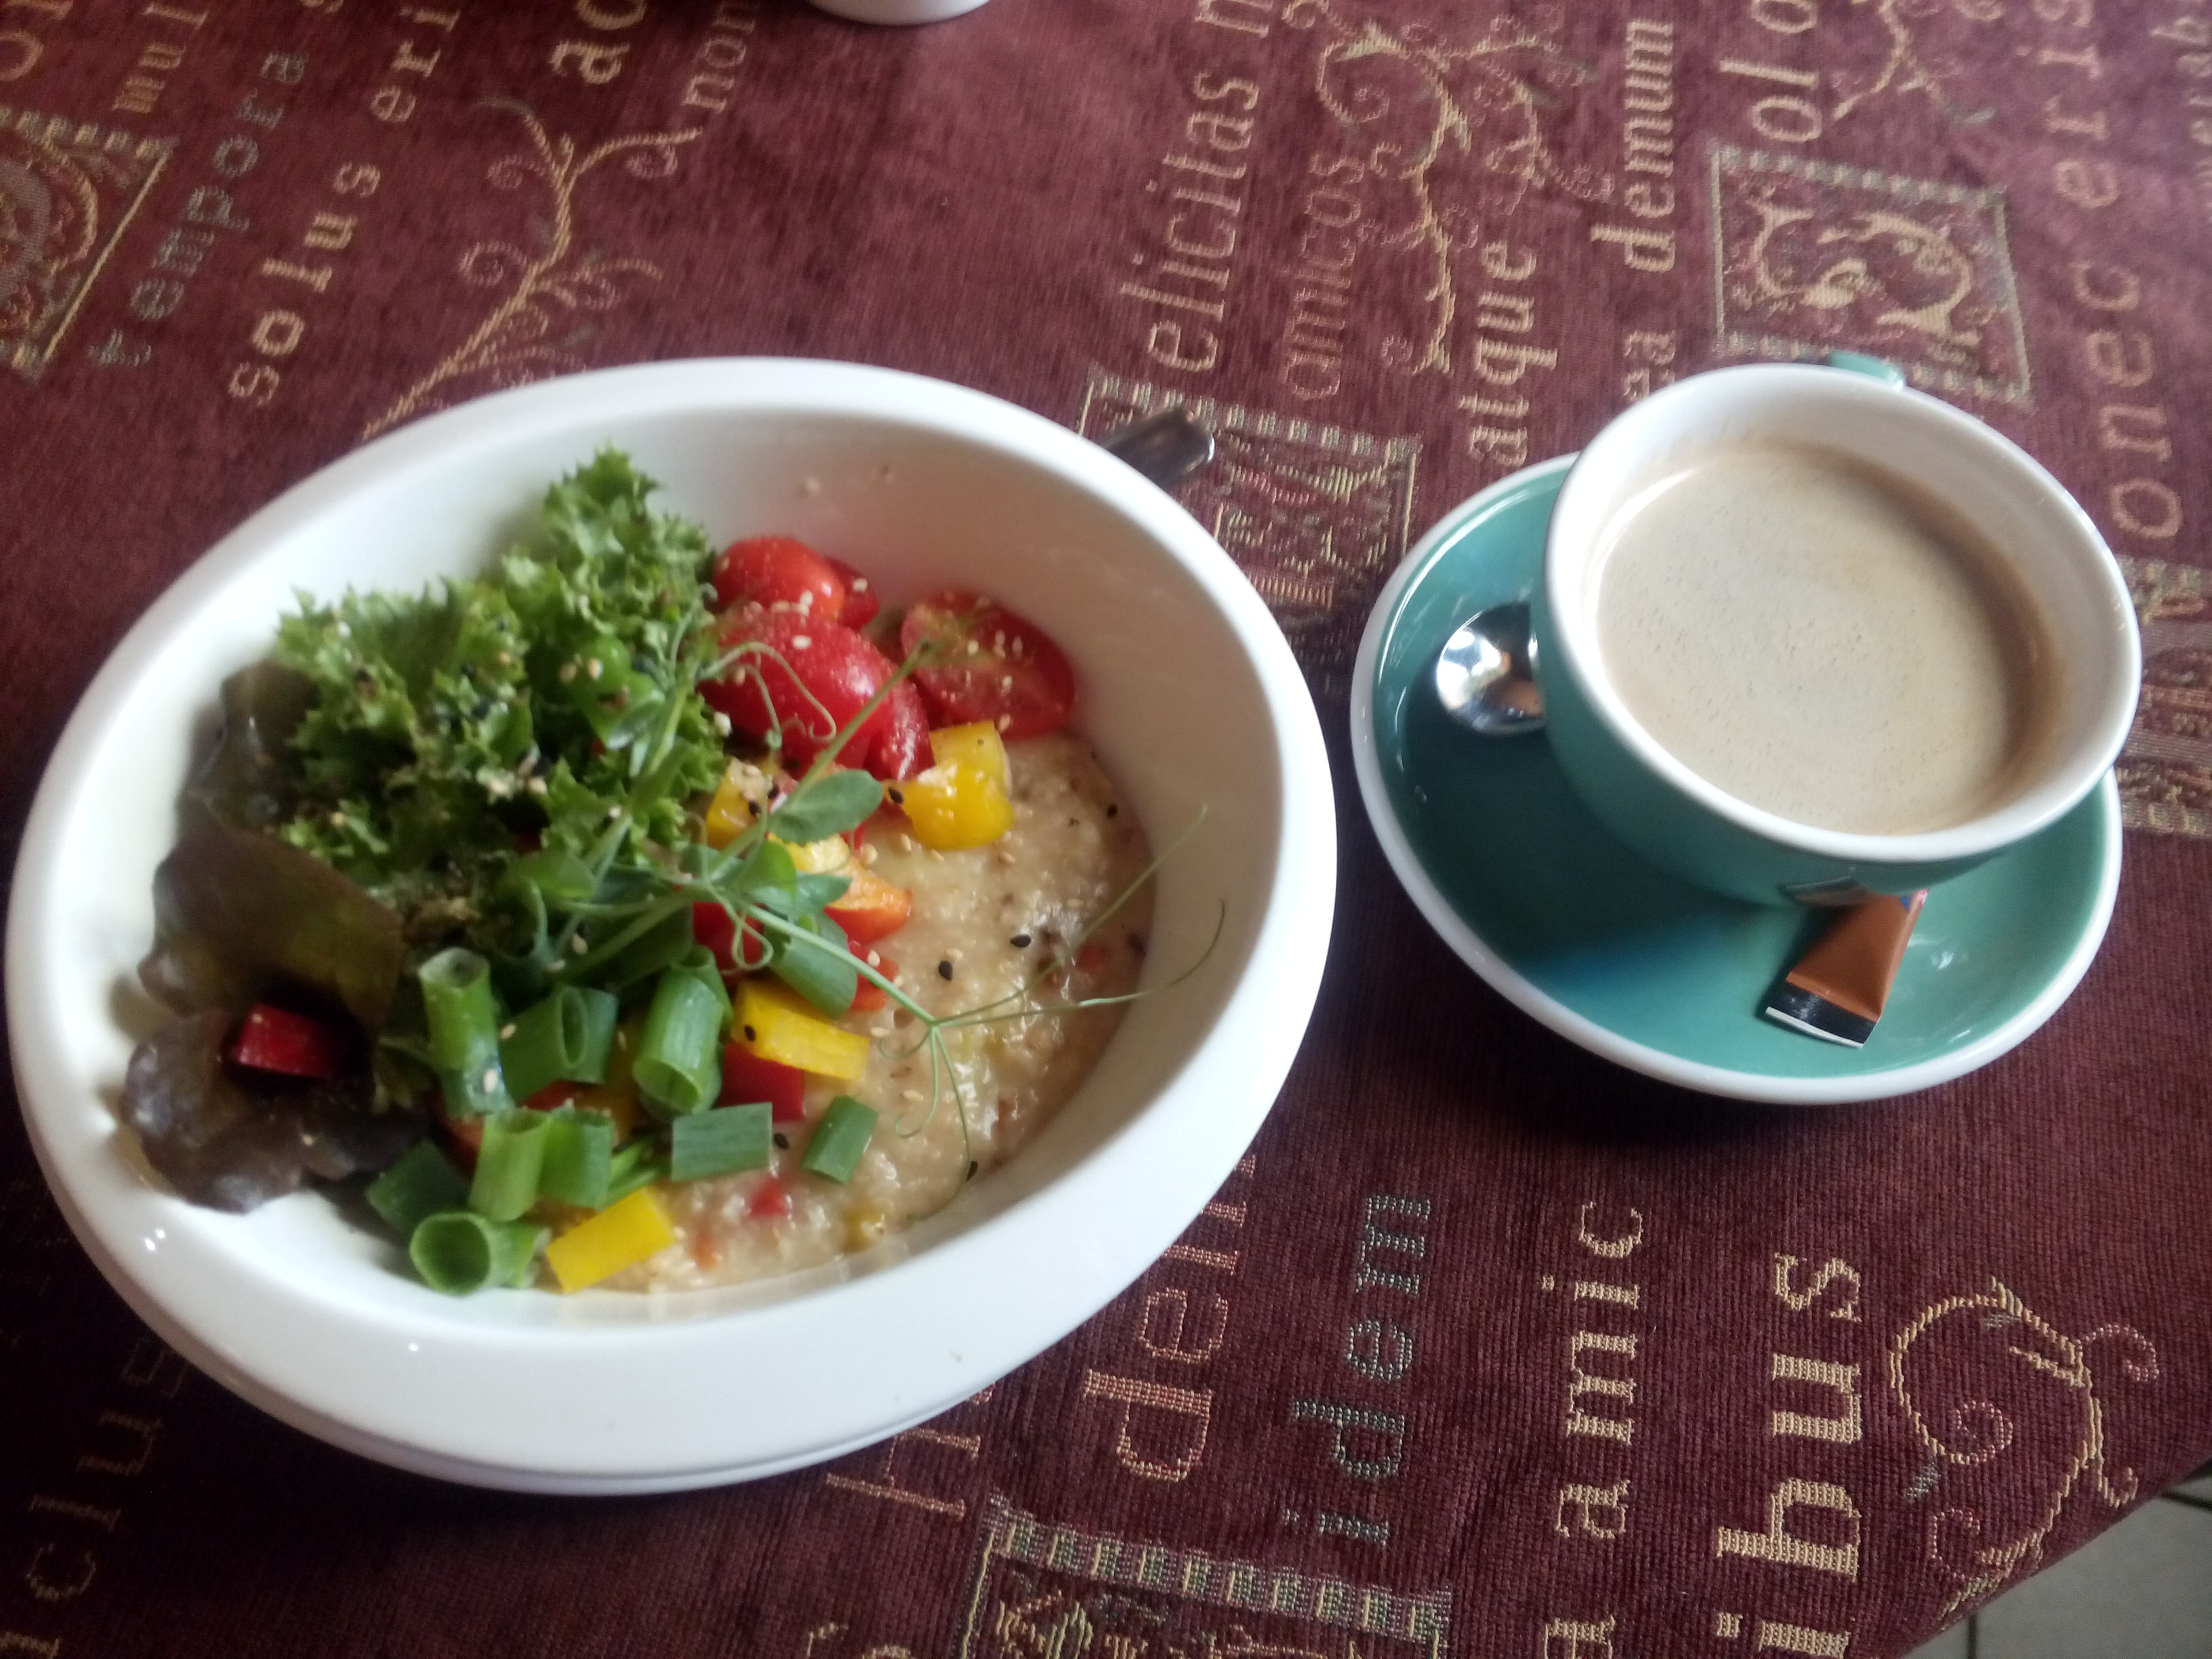 A red and gold tablecloth underneath a bowl of porridge with greens and tomatos, and a blue cup and saucer with coffee